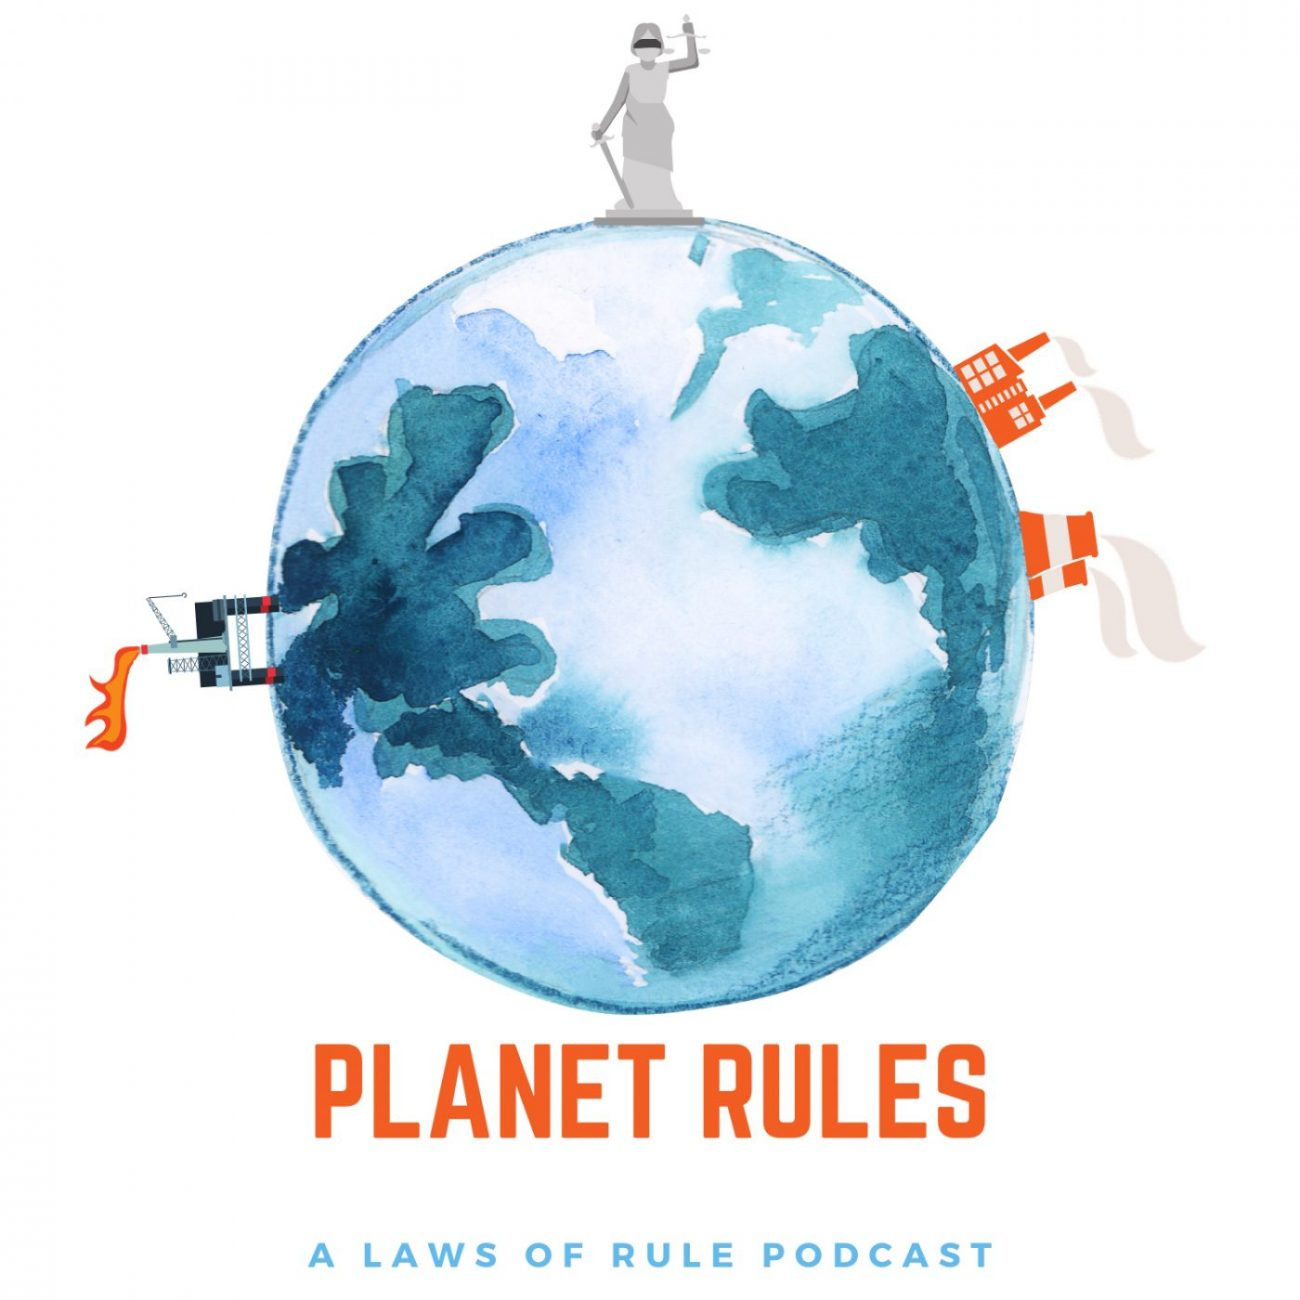 Planet Rules